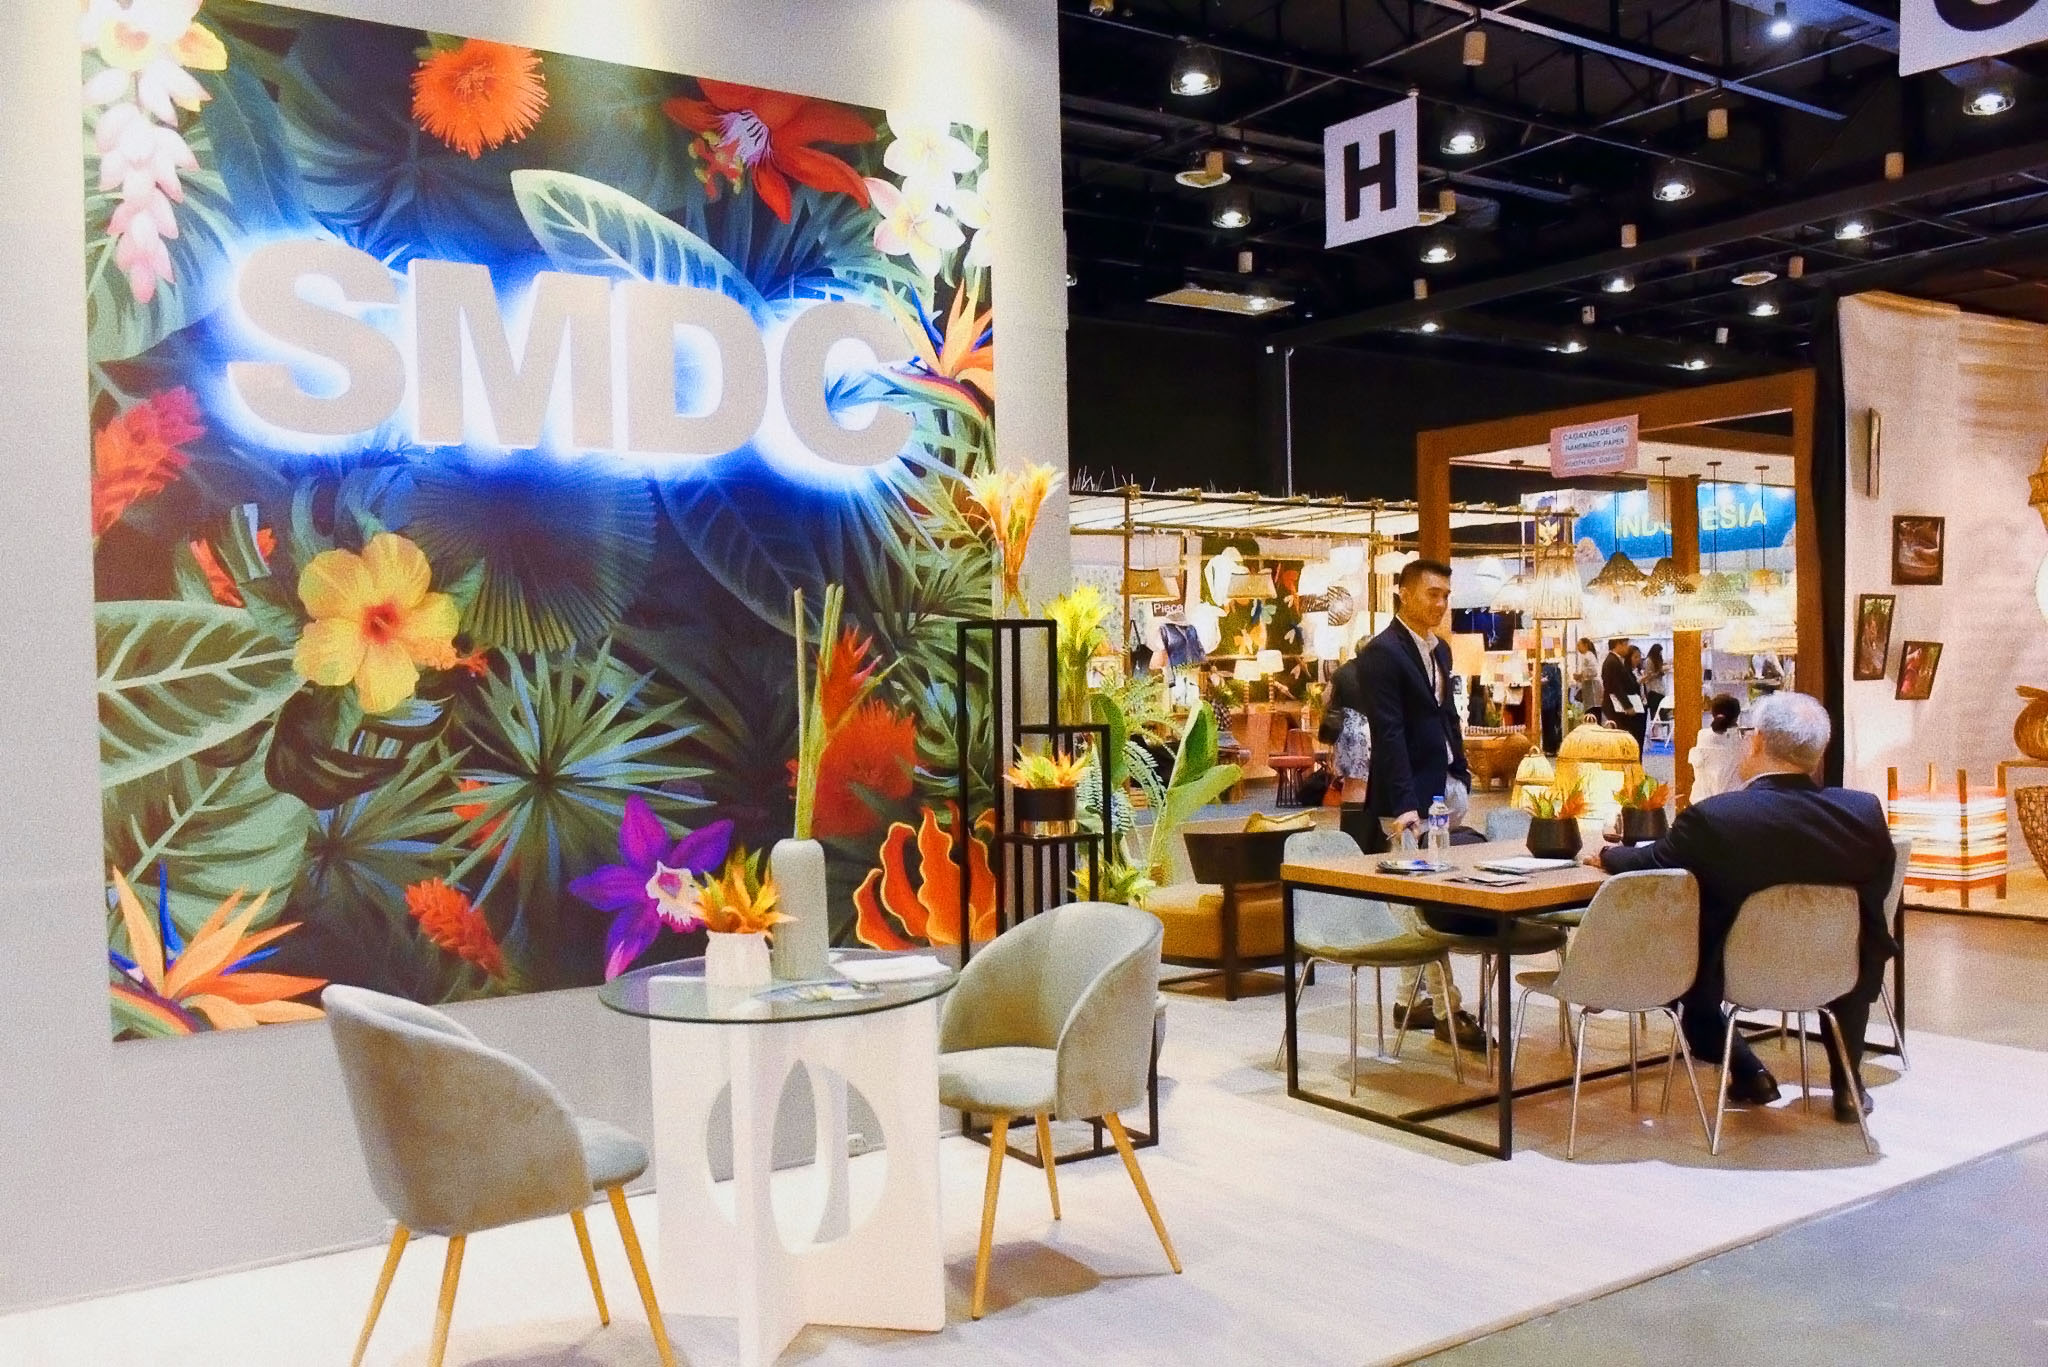 SMDC collaborates with DTI-CITEM to create stylized business lounges at premier lifestyle event